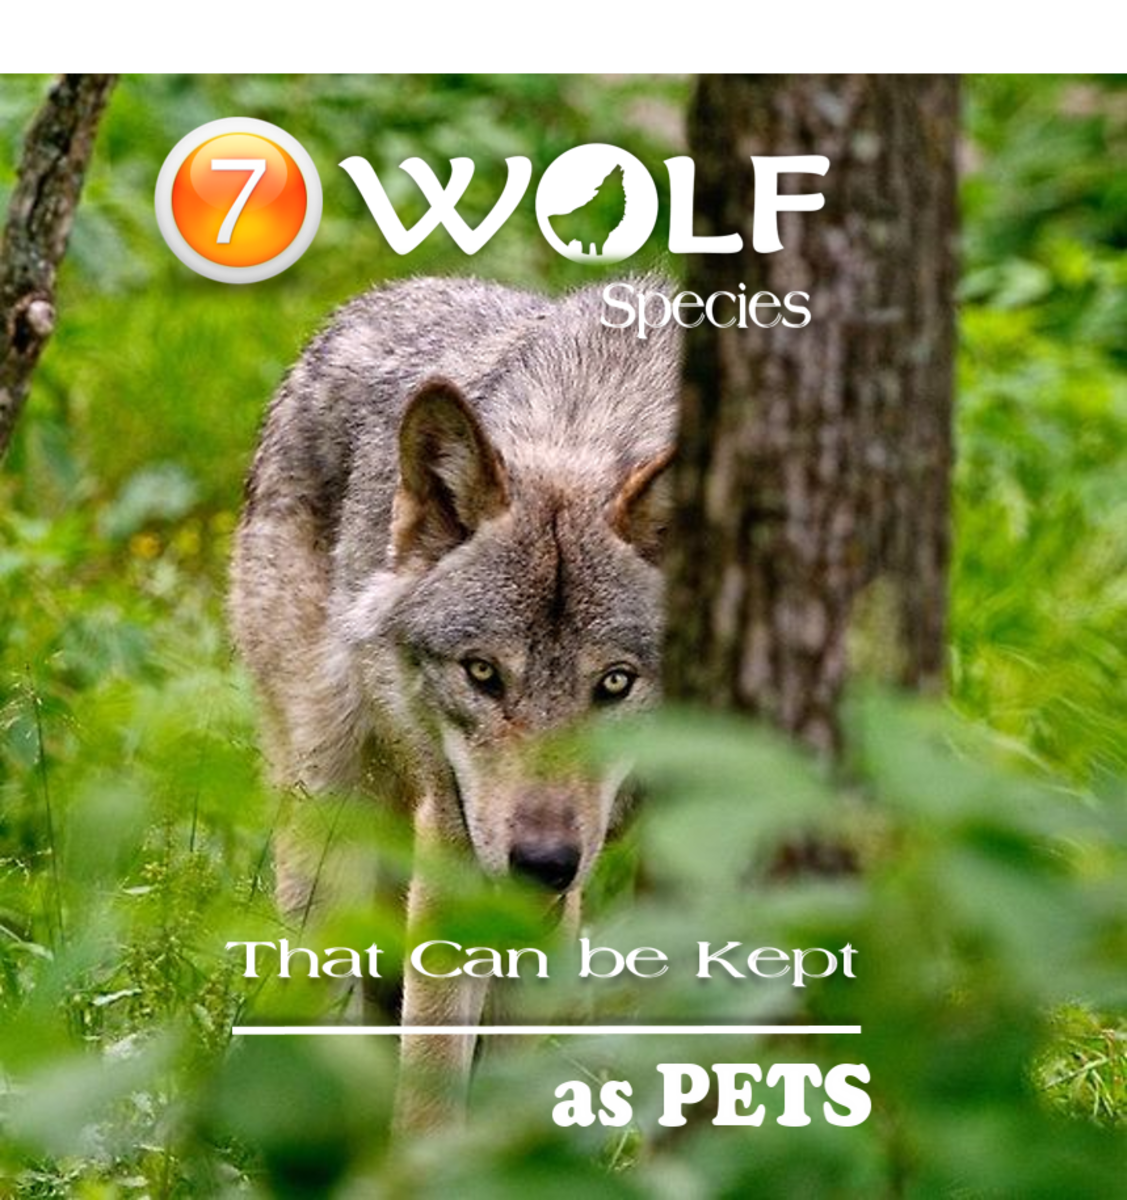 The Wolves that are Social Animals and Can be Kept as Pets